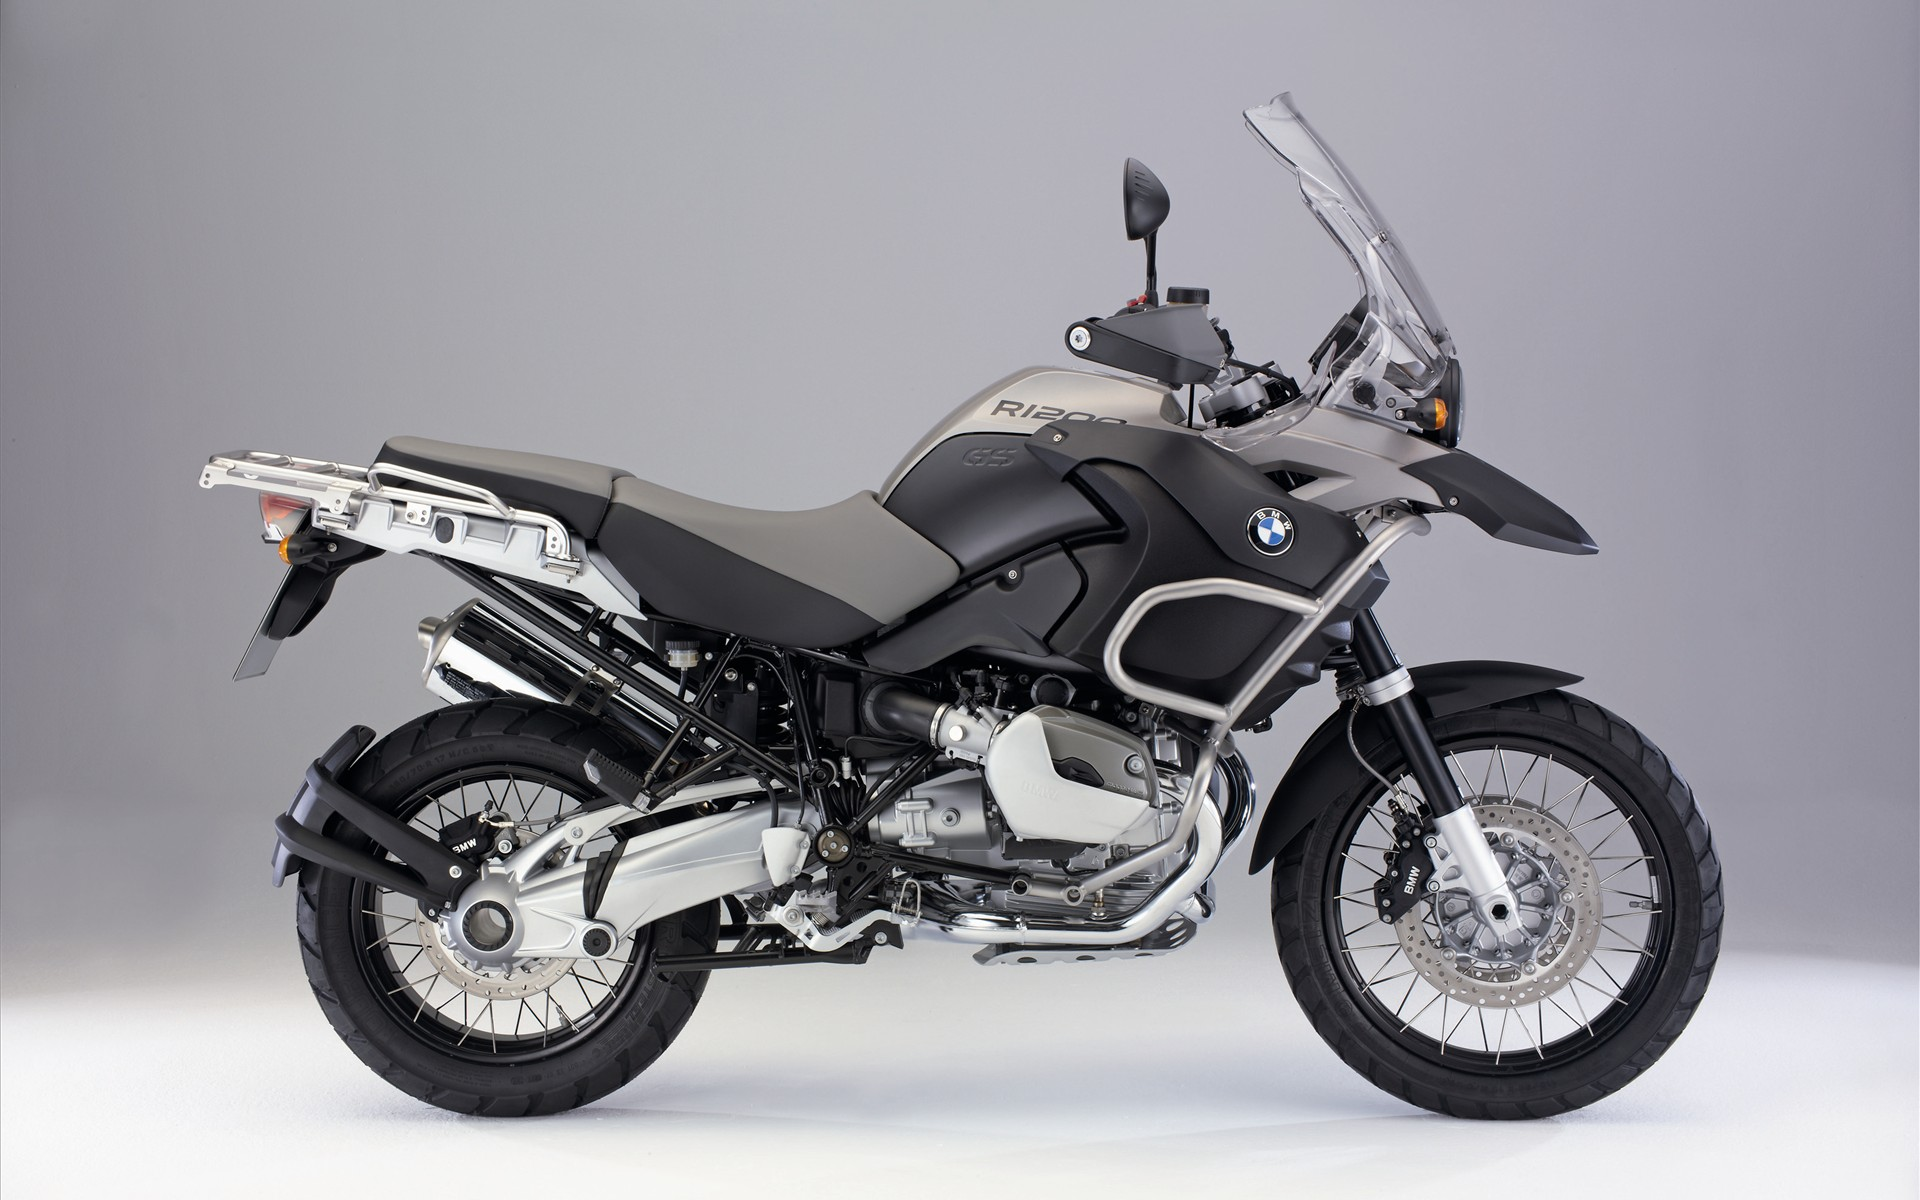 BMW R 1200 GS 276.5 Kb